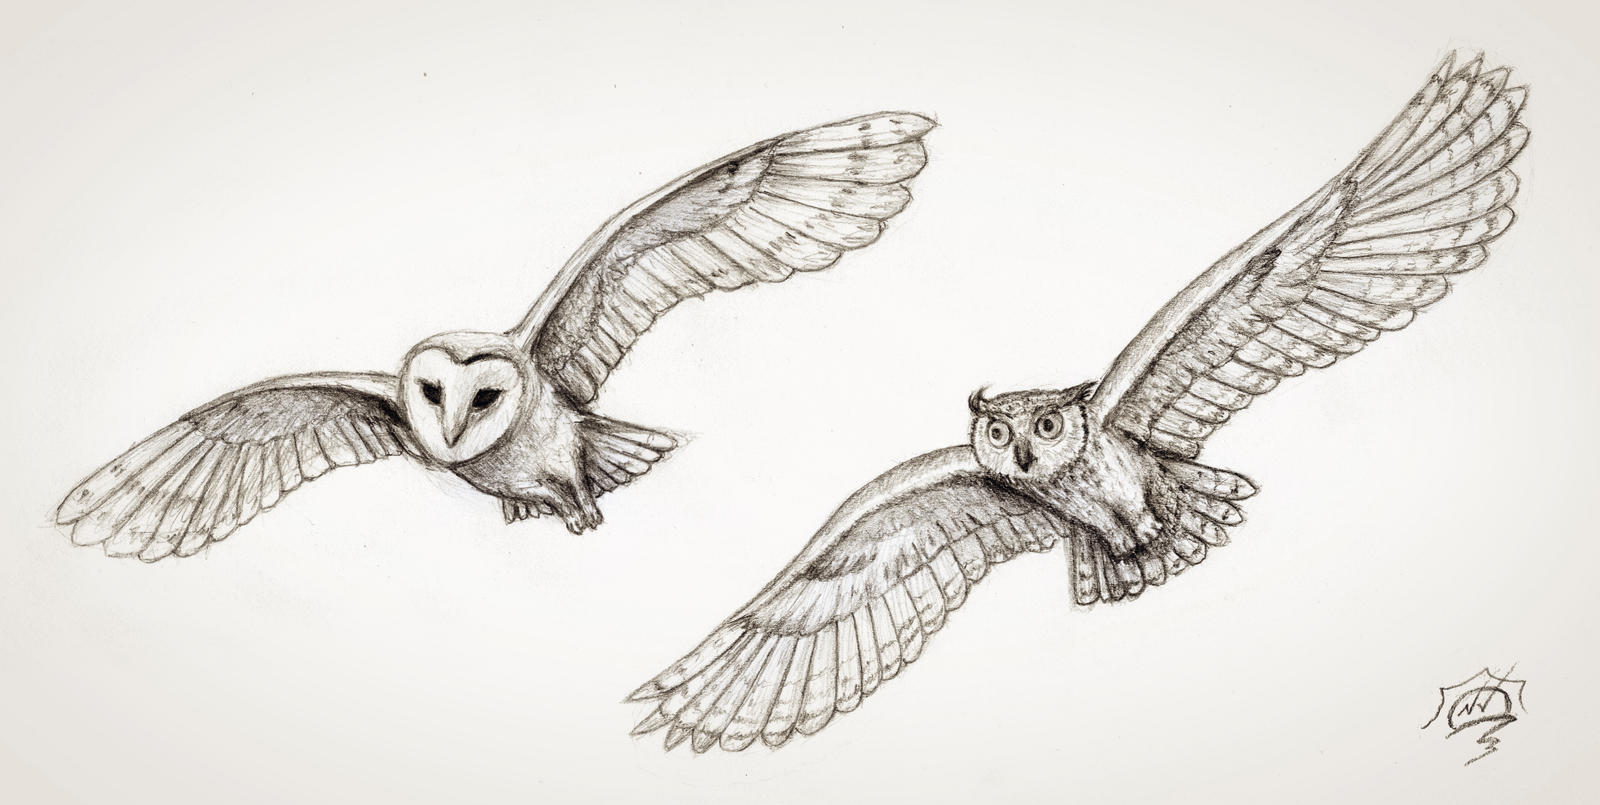 Flying owl pencil drawings - photo#4